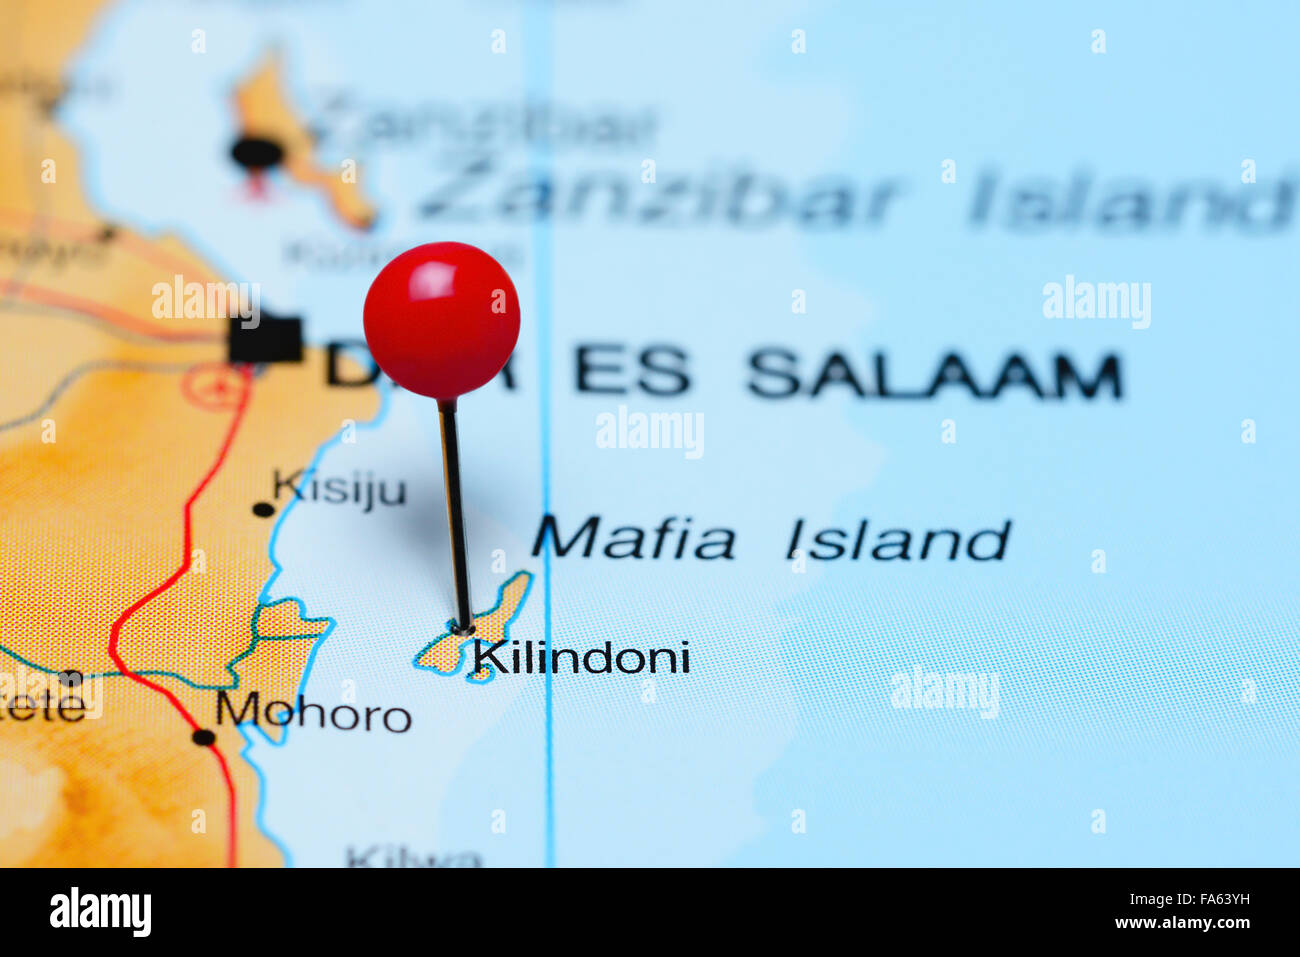 Kilindoni pinned on a map of Africa - Stock Image